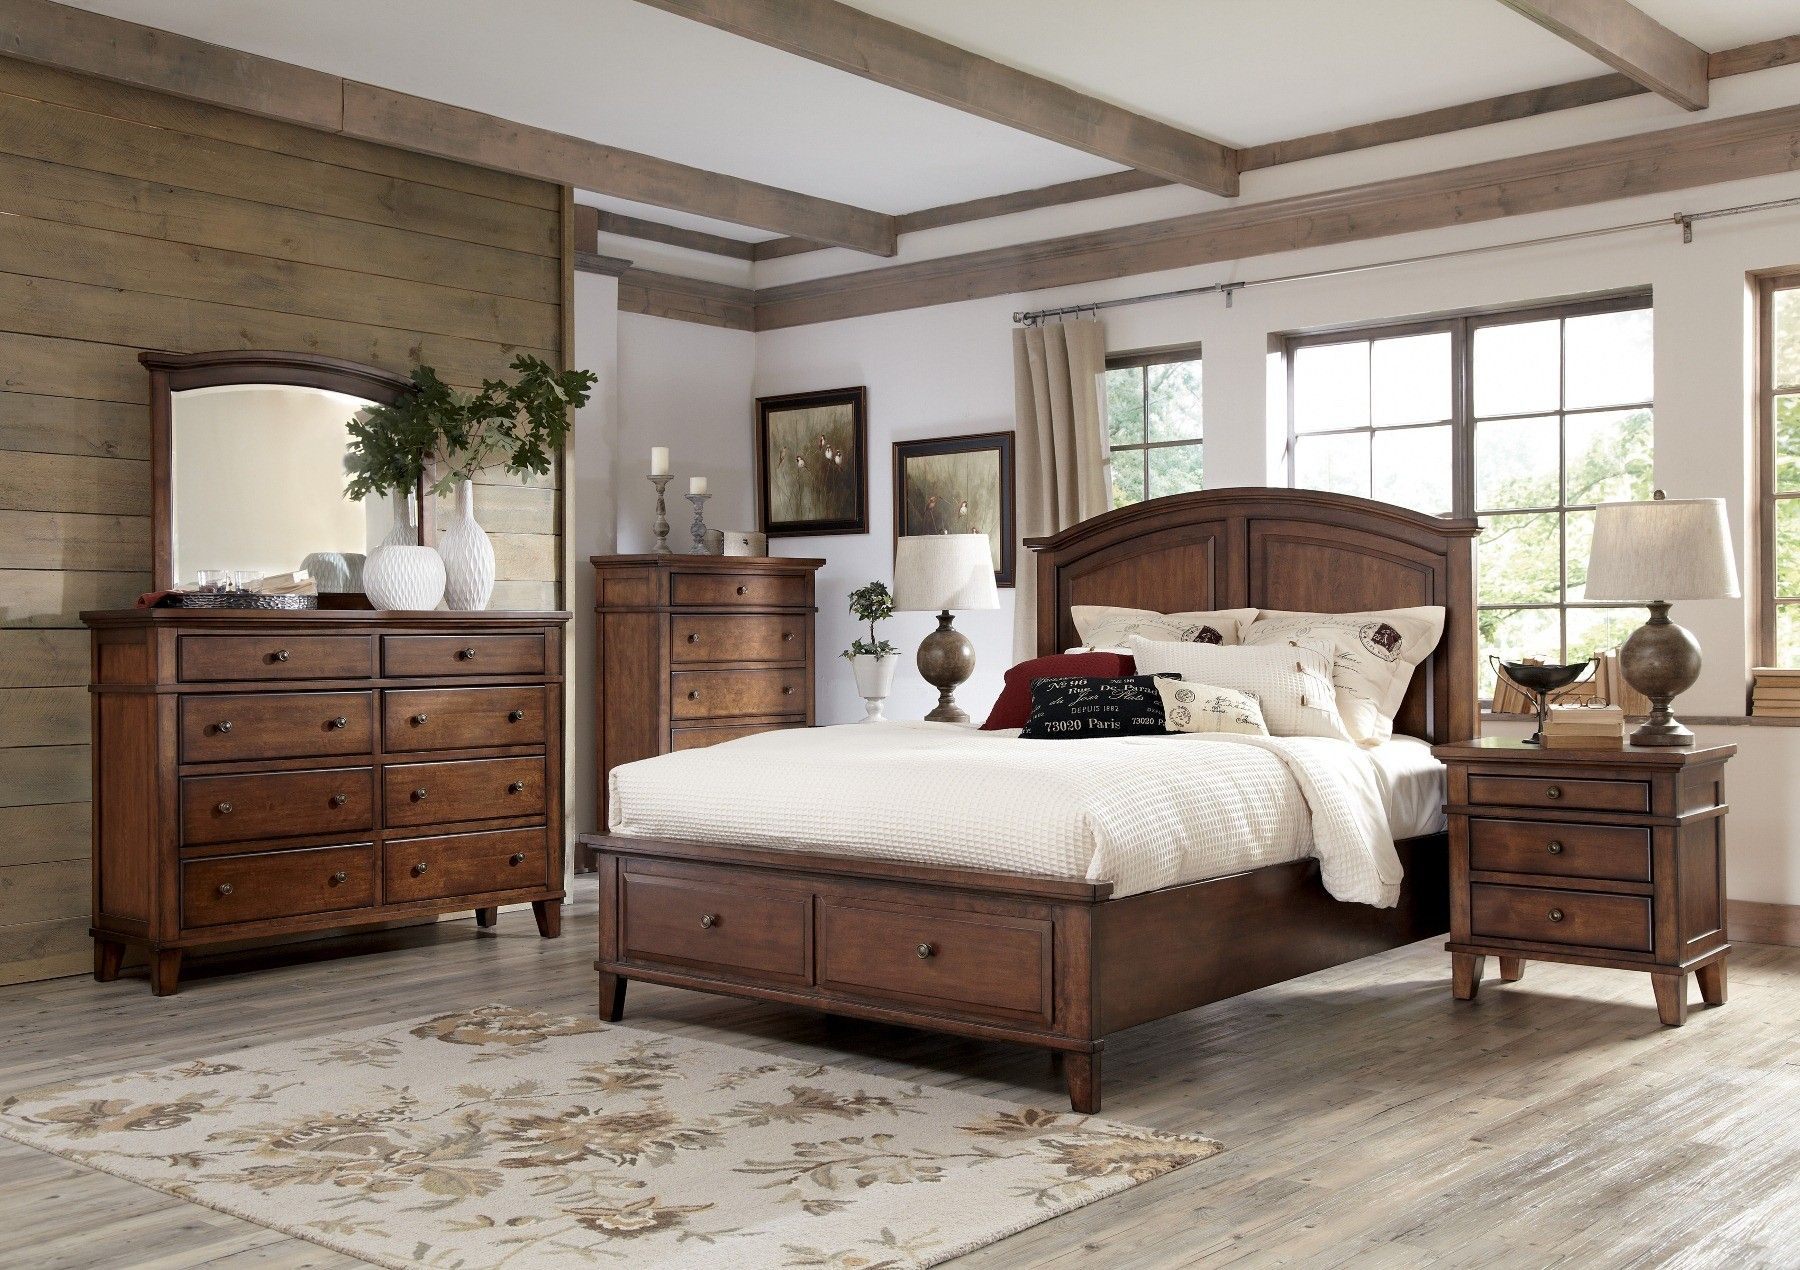 burkesville panel storage bedroom set b565 57 54s 96s room ashley